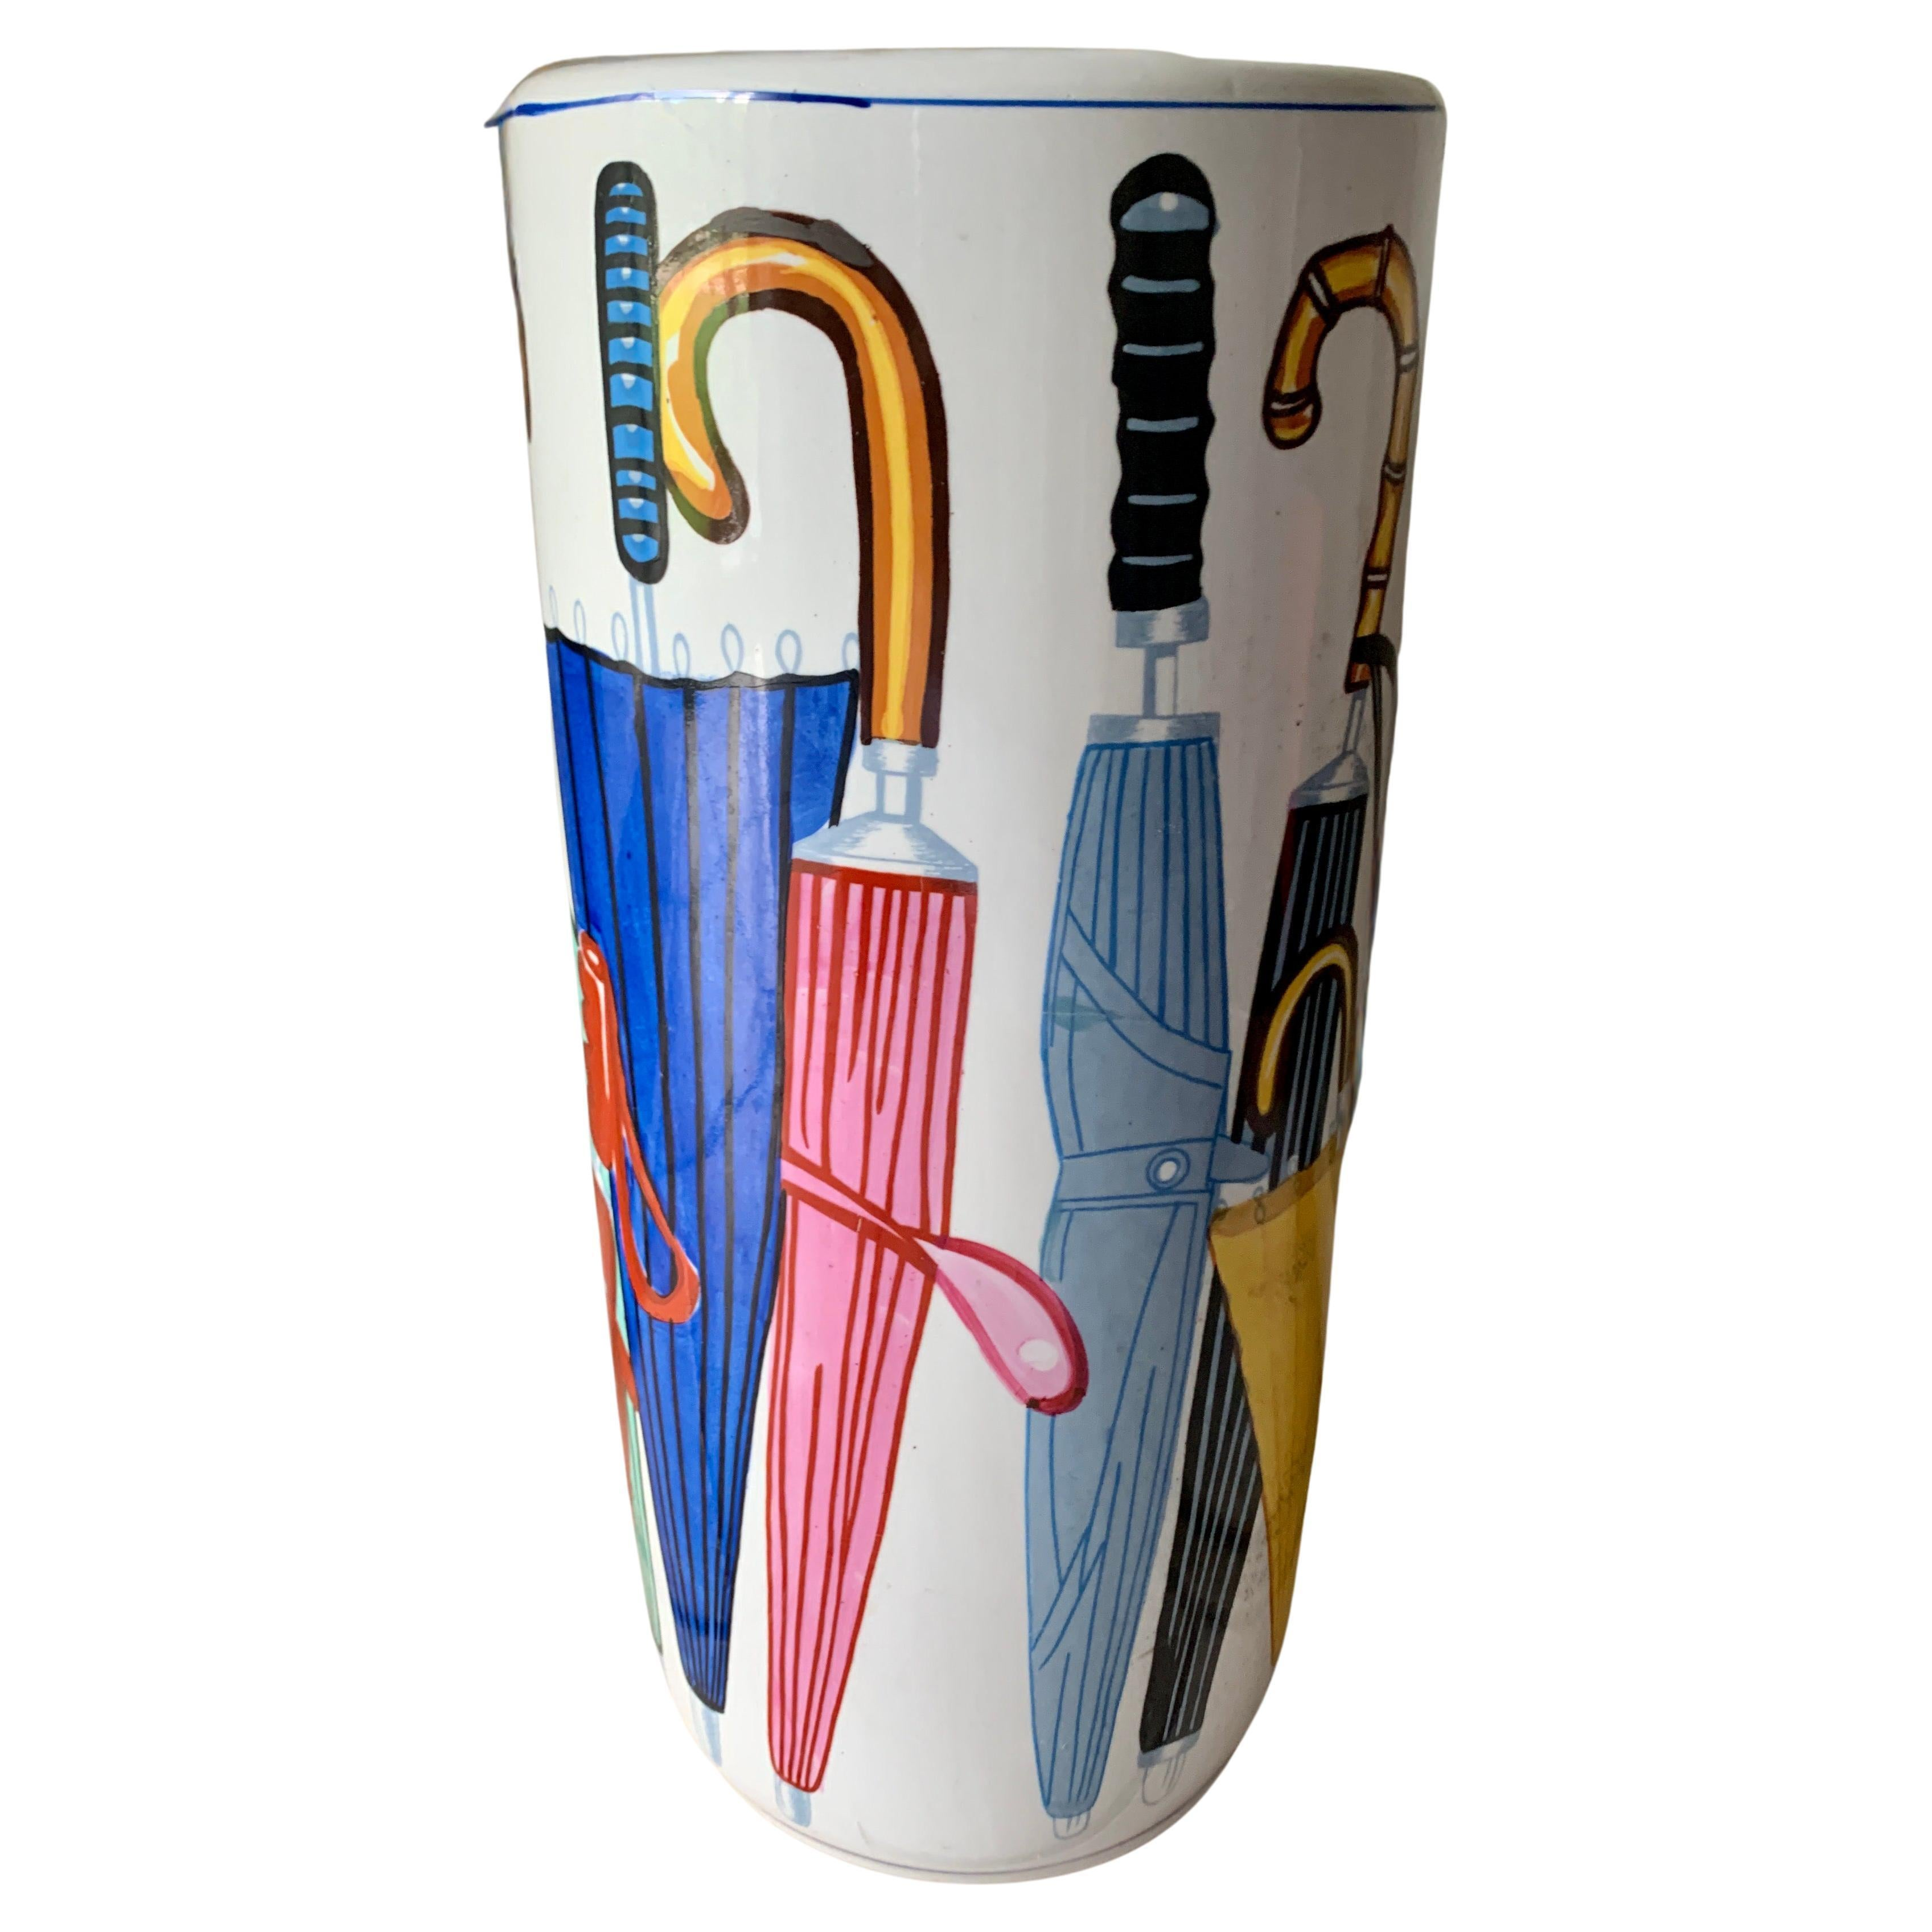 Ceramic Umbrella Stand with Umbrella Illustrations in the Style of Fornasetti